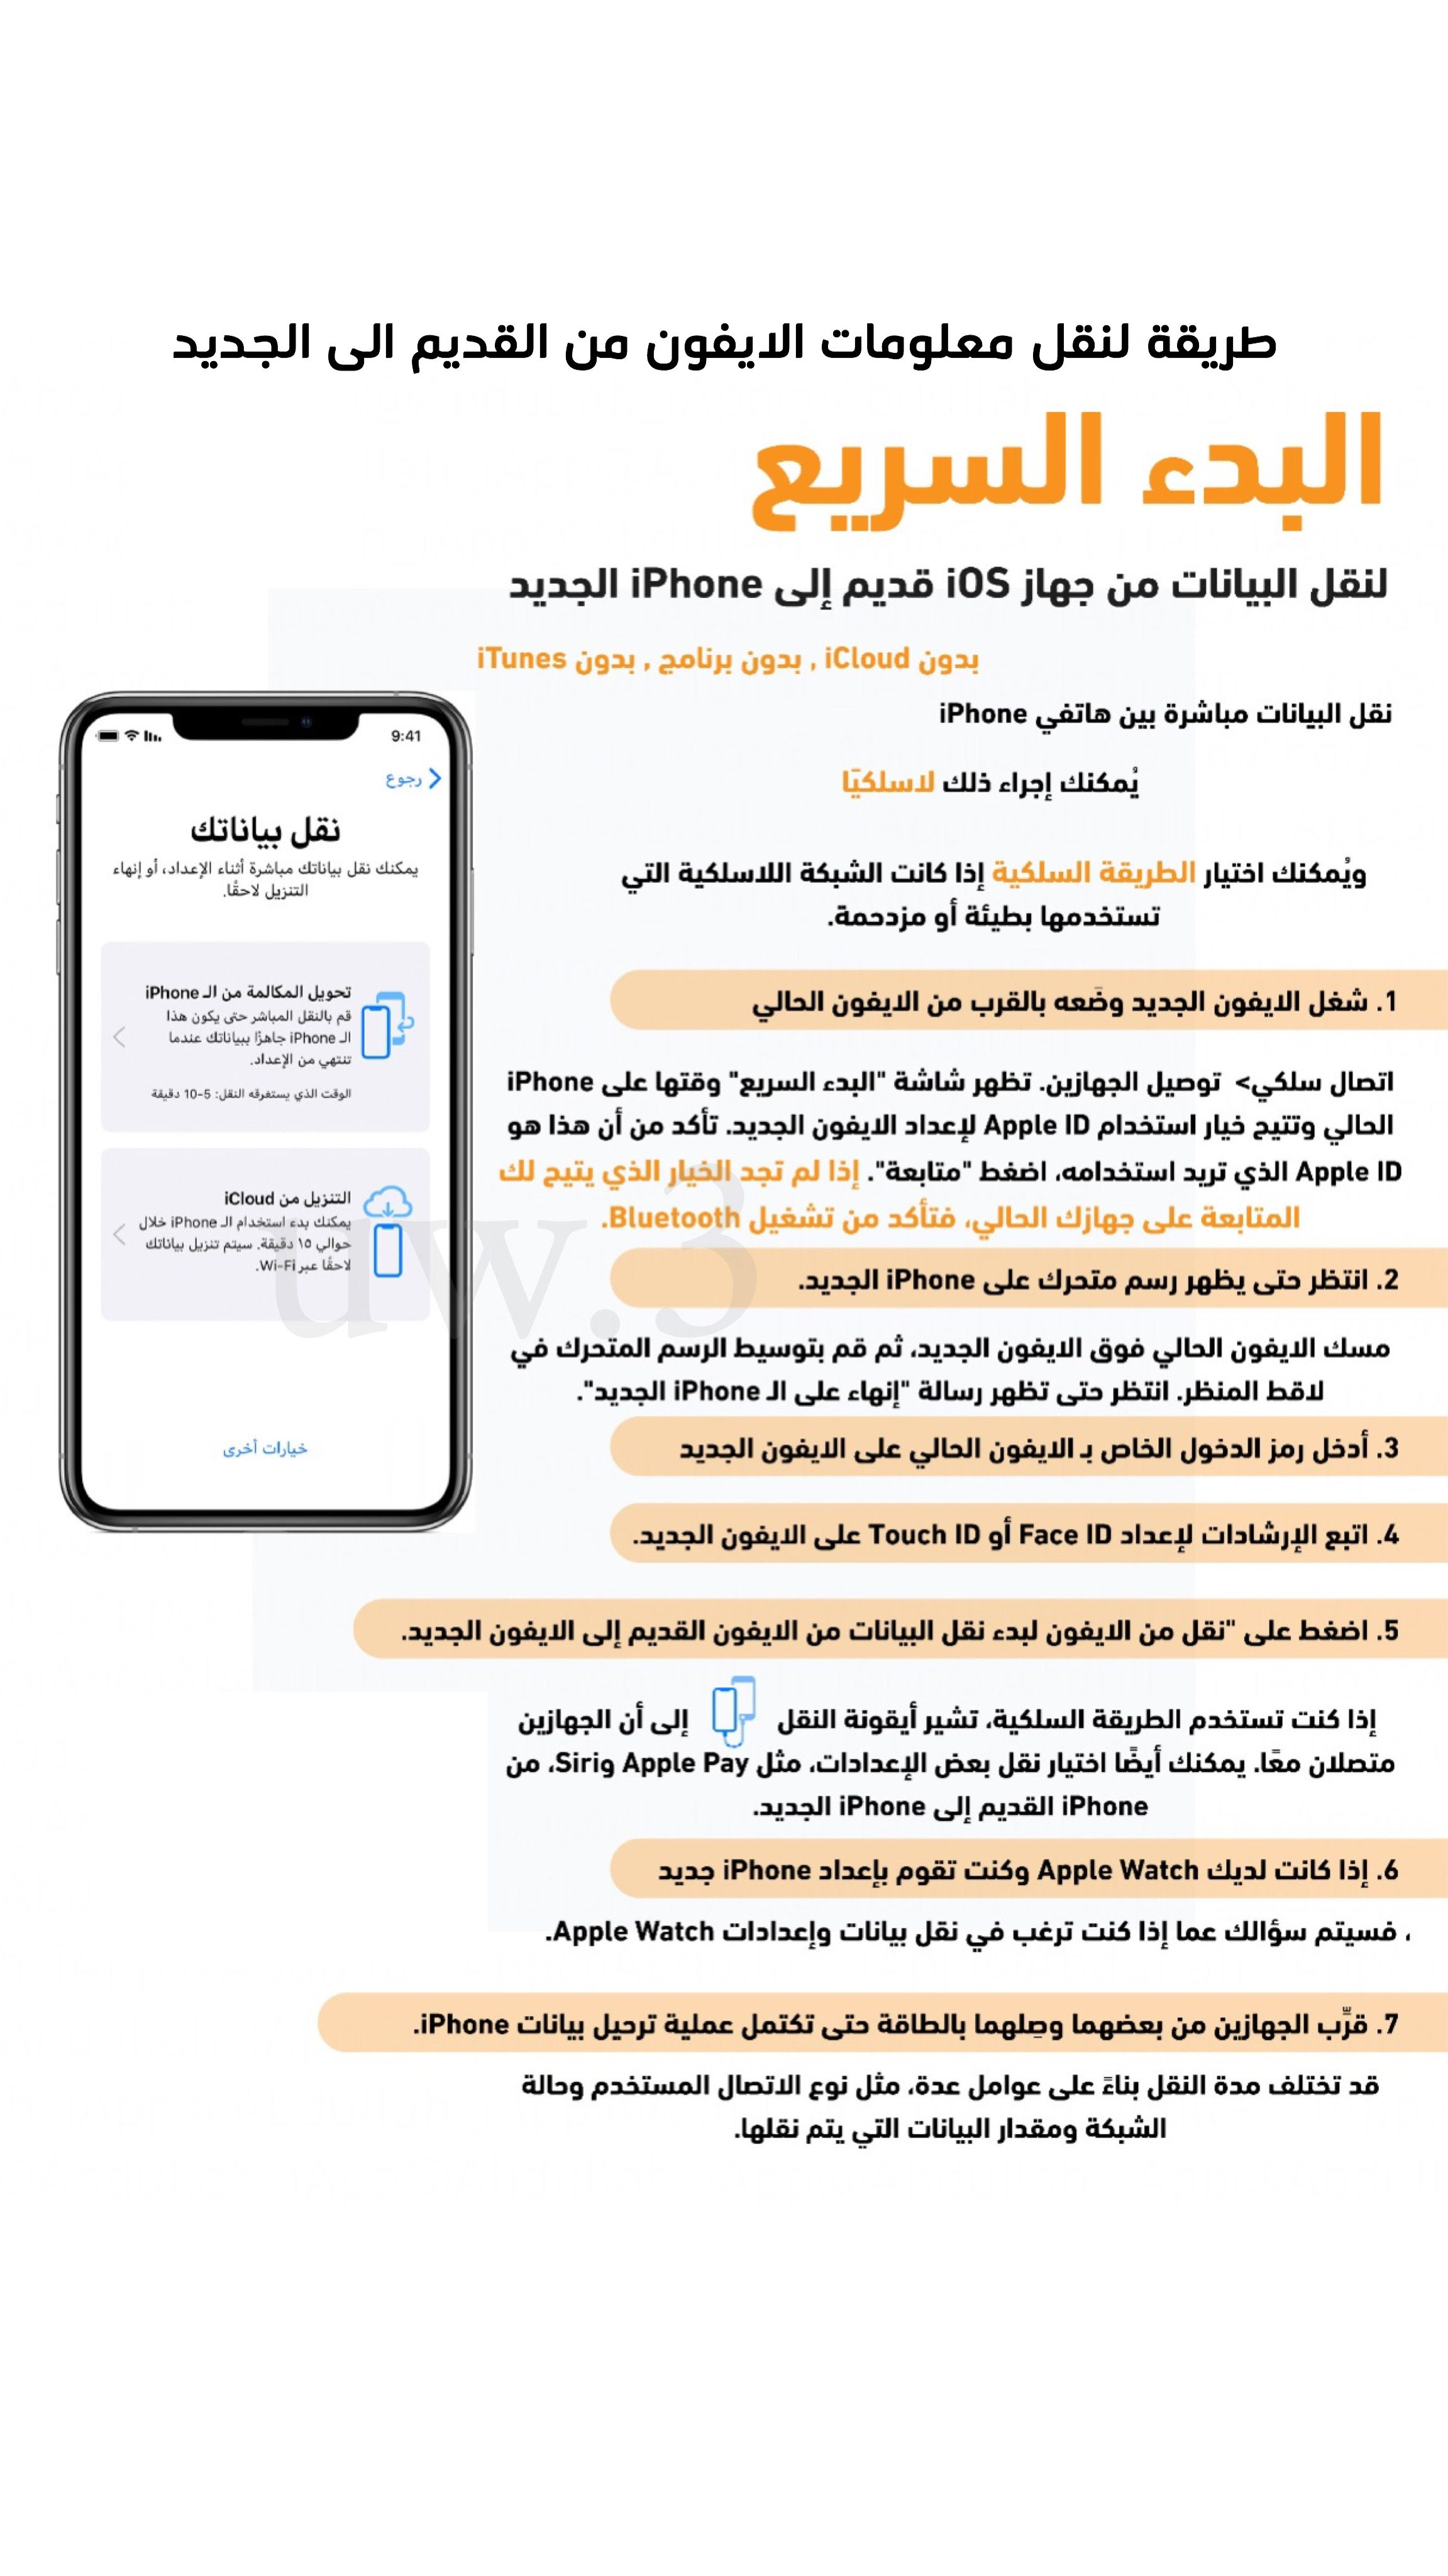 Pin By Abdallah Lala On Bricolage In 2020 Application Iphone Useful Life Hacks Iphone 9